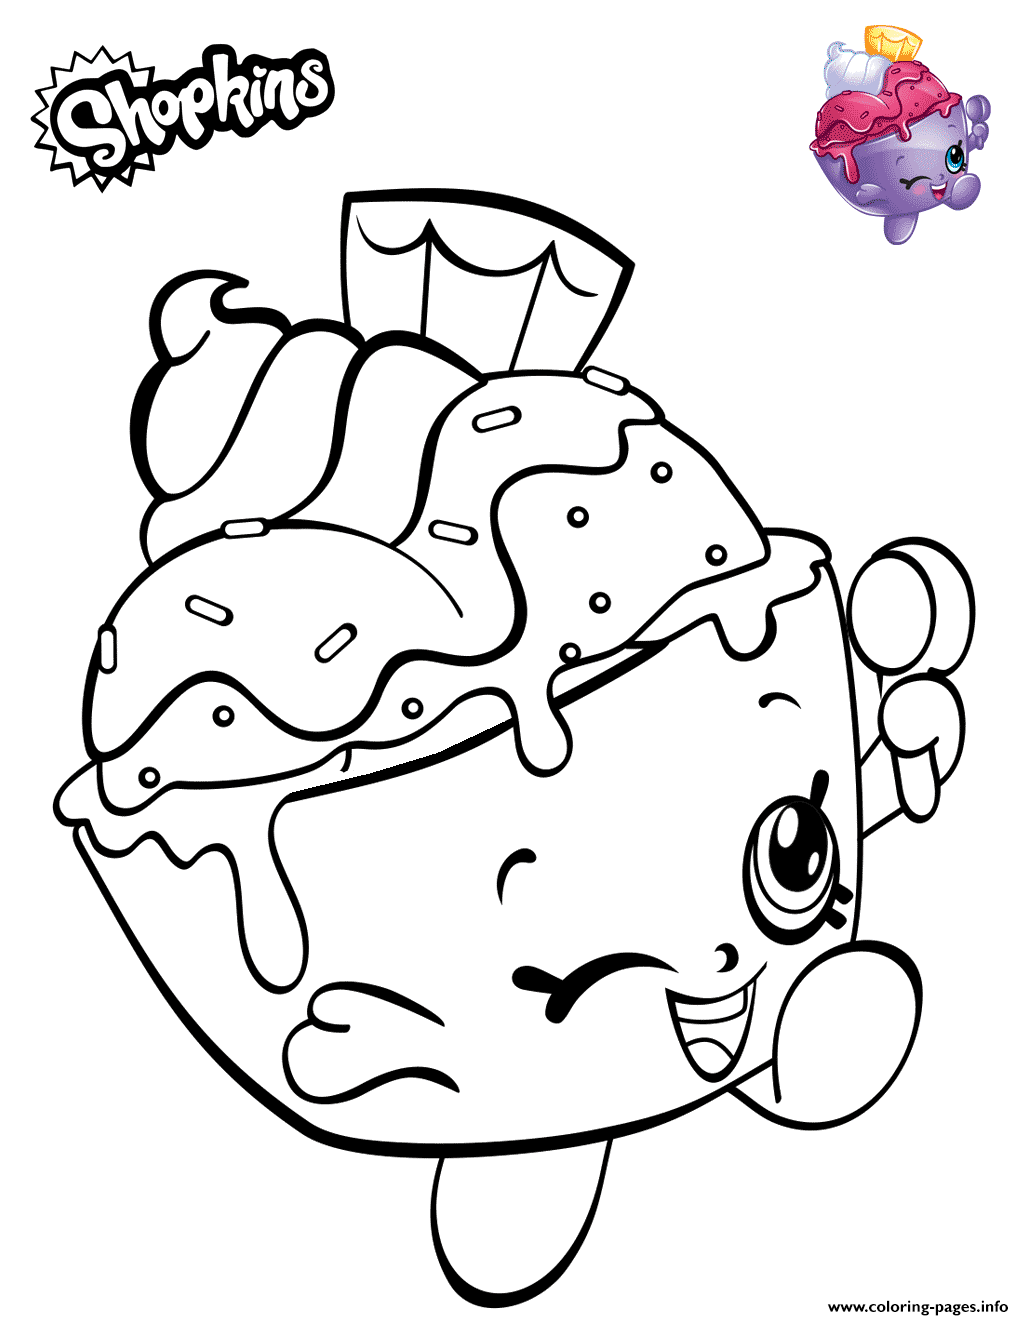 Print Shopkins Ice Cream Cup Coloring Pages Shopkin Coloring Pages Shopkins Coloring Pages Free Printable Shopkins Colouring Pages